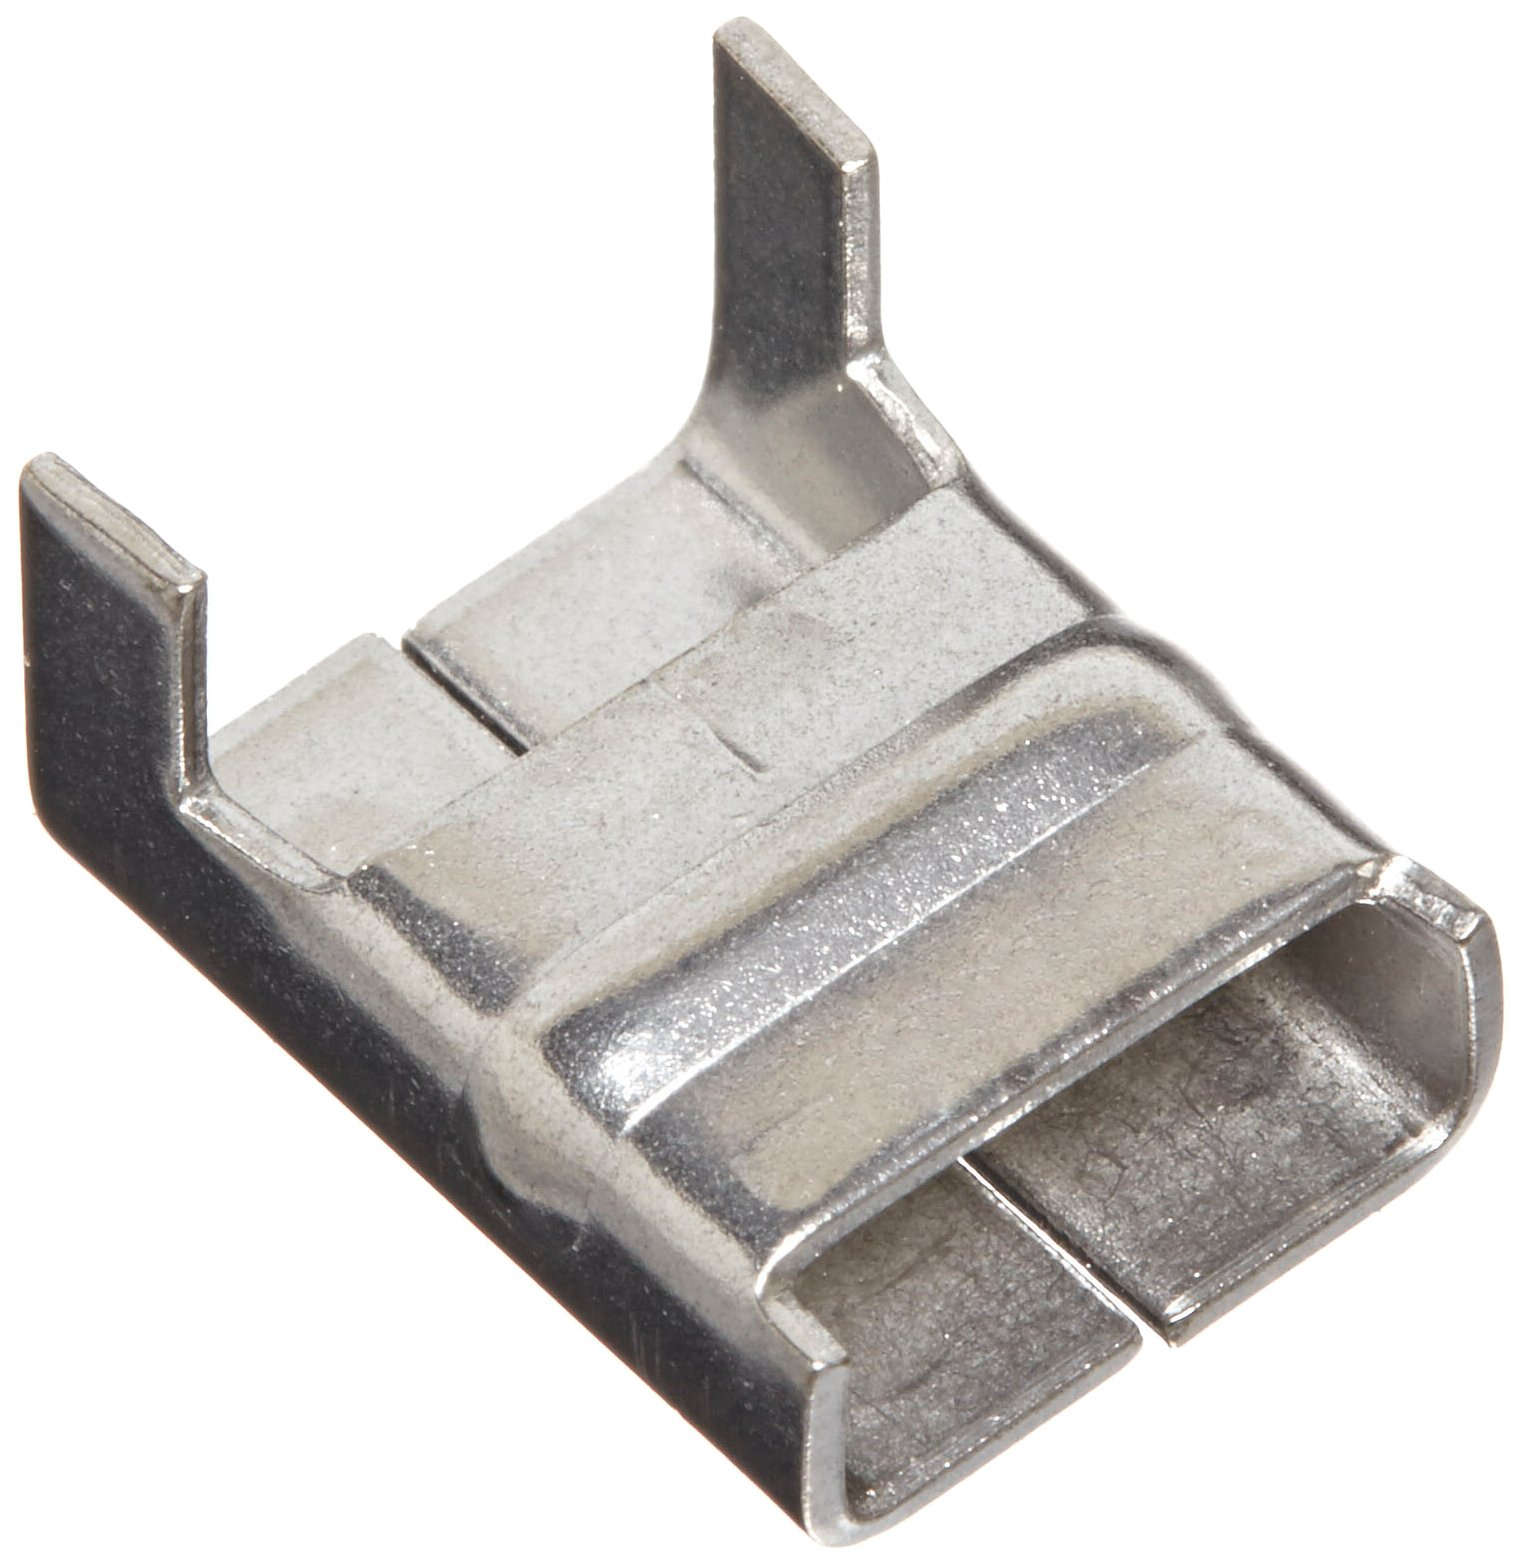 BAND-IT Clips AE4539, 316 Stainless Steel, 3/8'' Wide (100 per Box) by Band-It